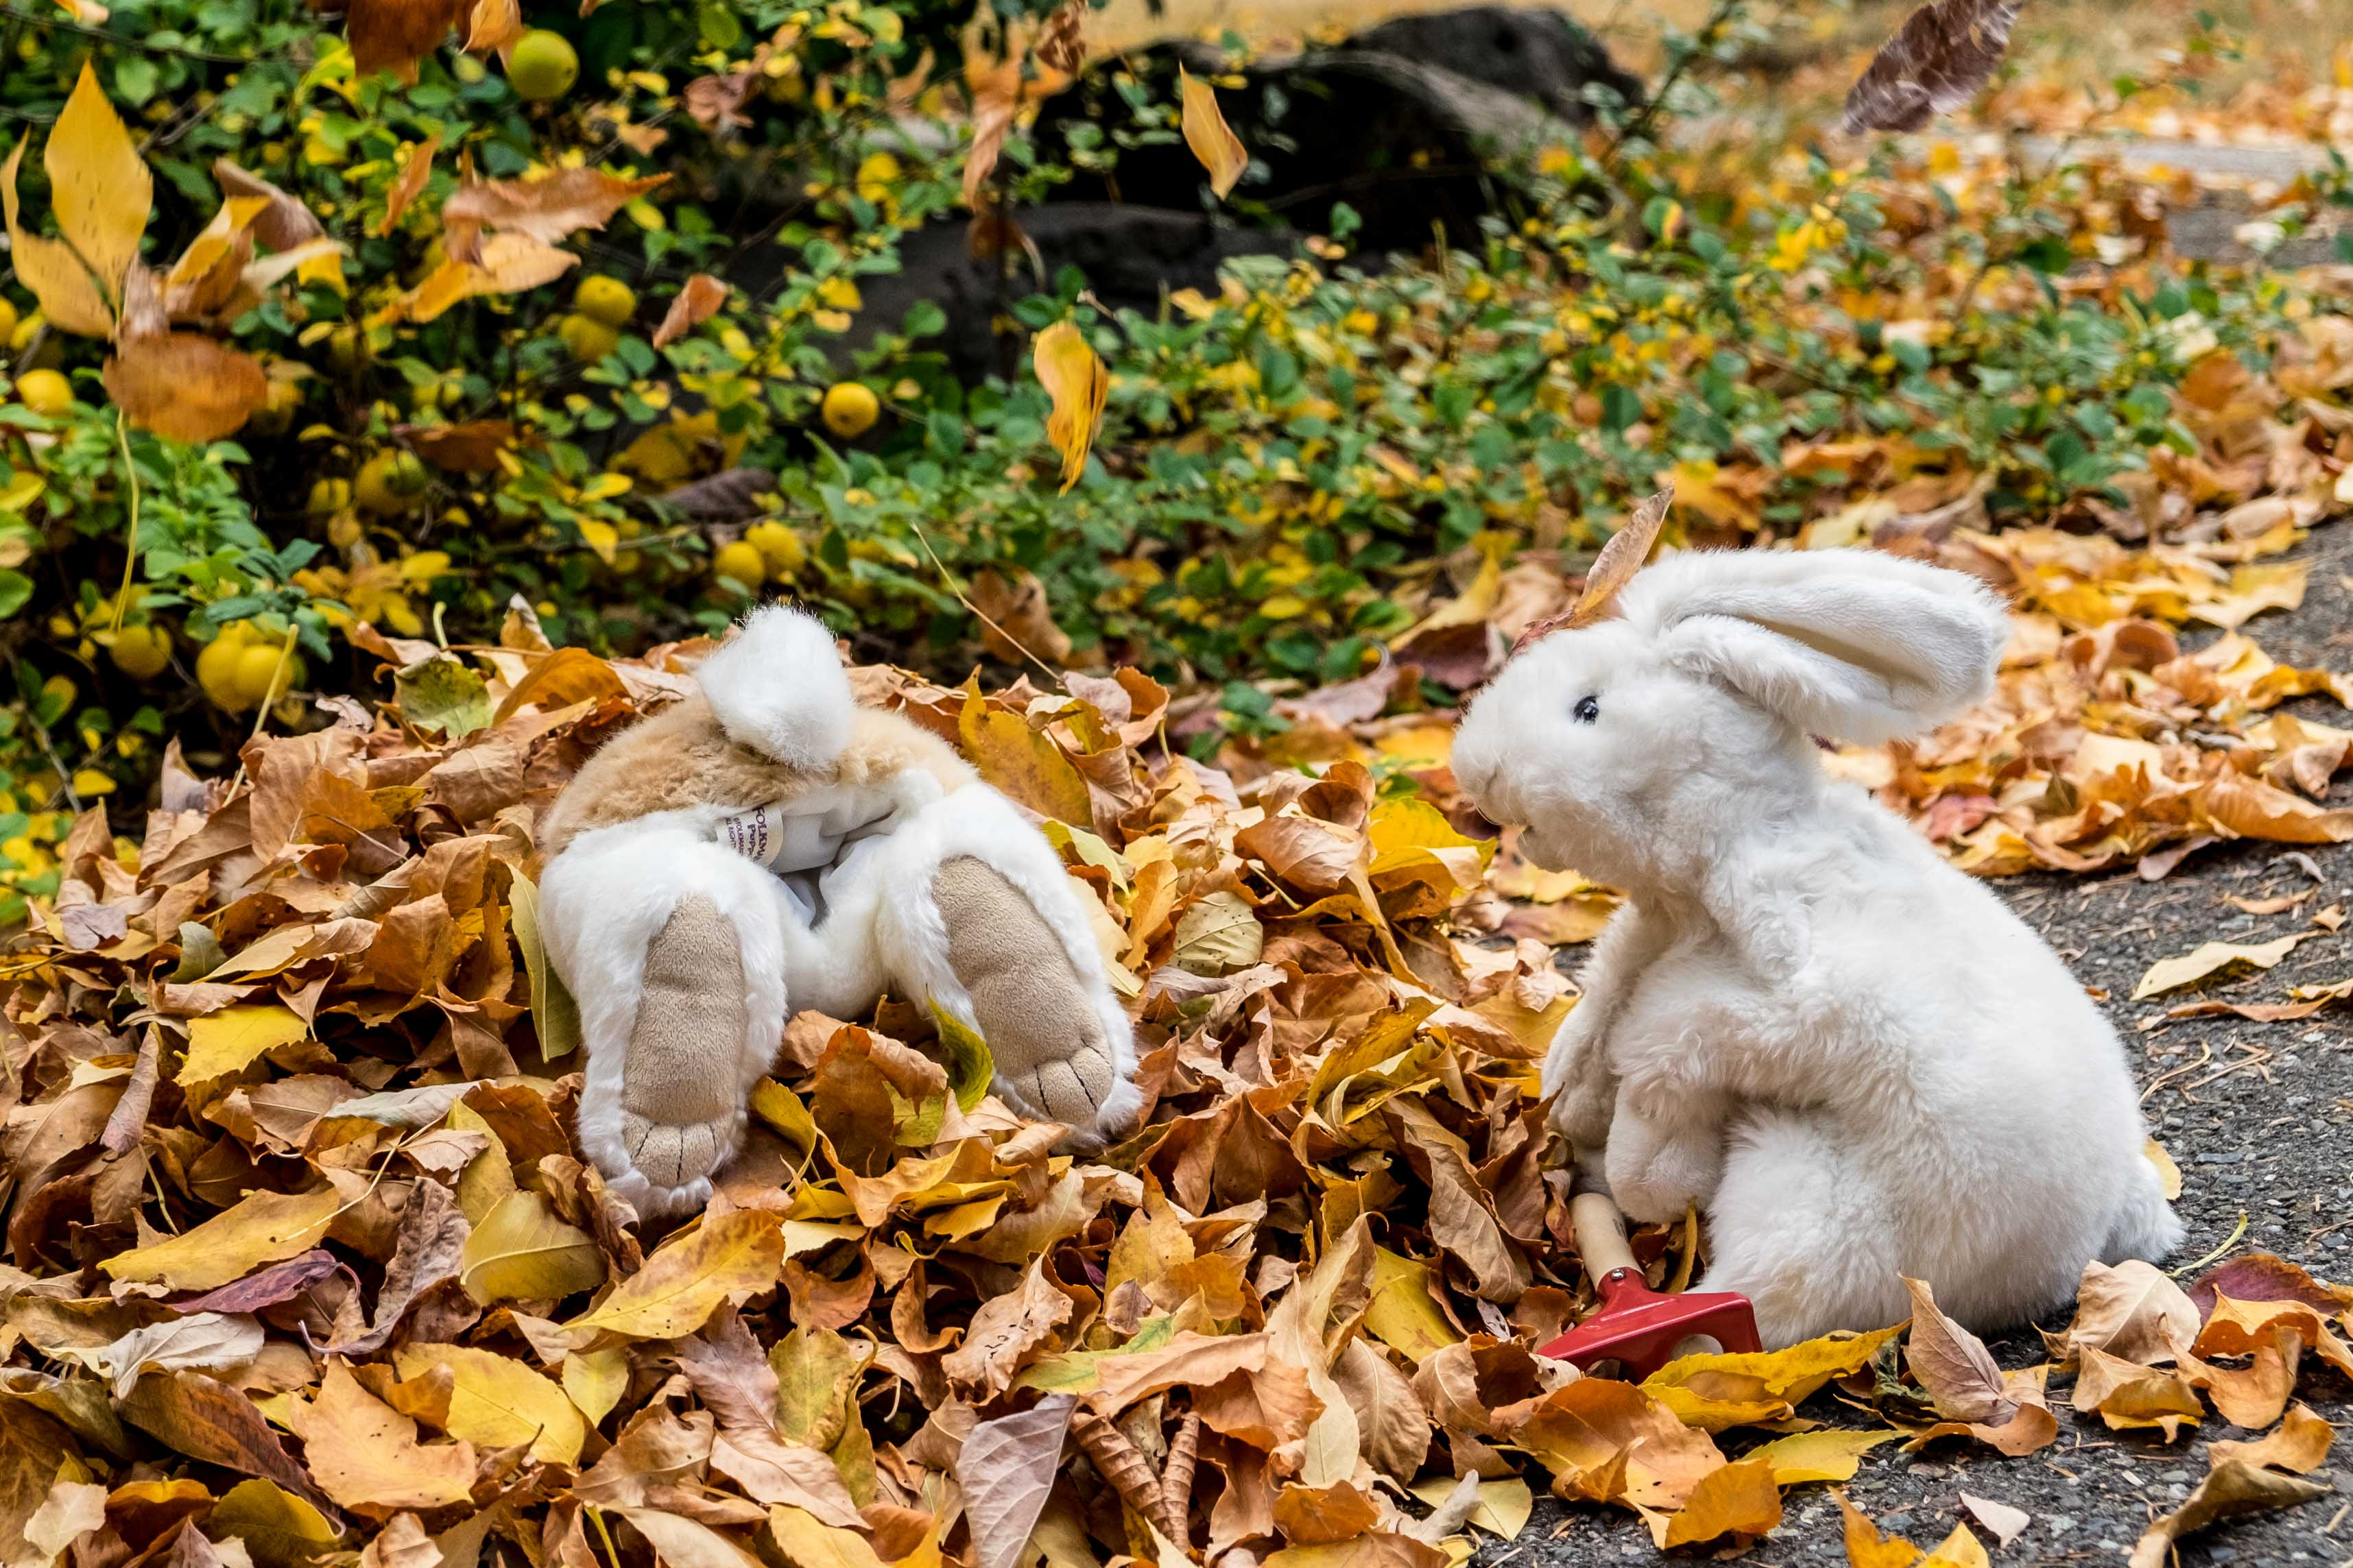 puppet bunnies jumping in leaves